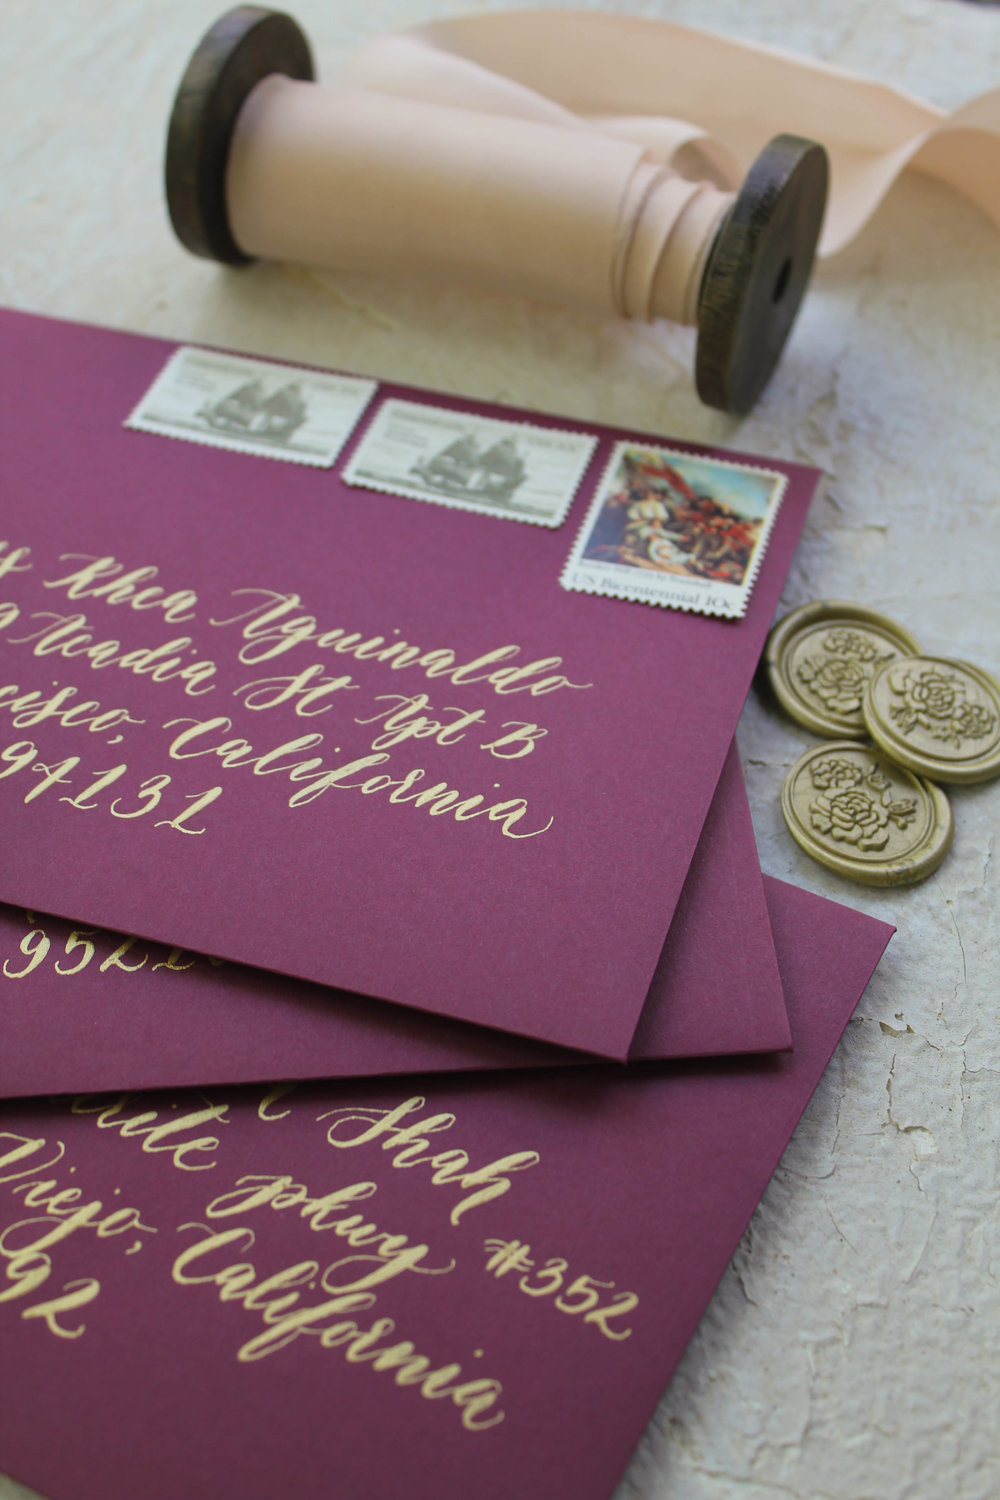 Such an elegant combination of colors and postage, don't you agree?!